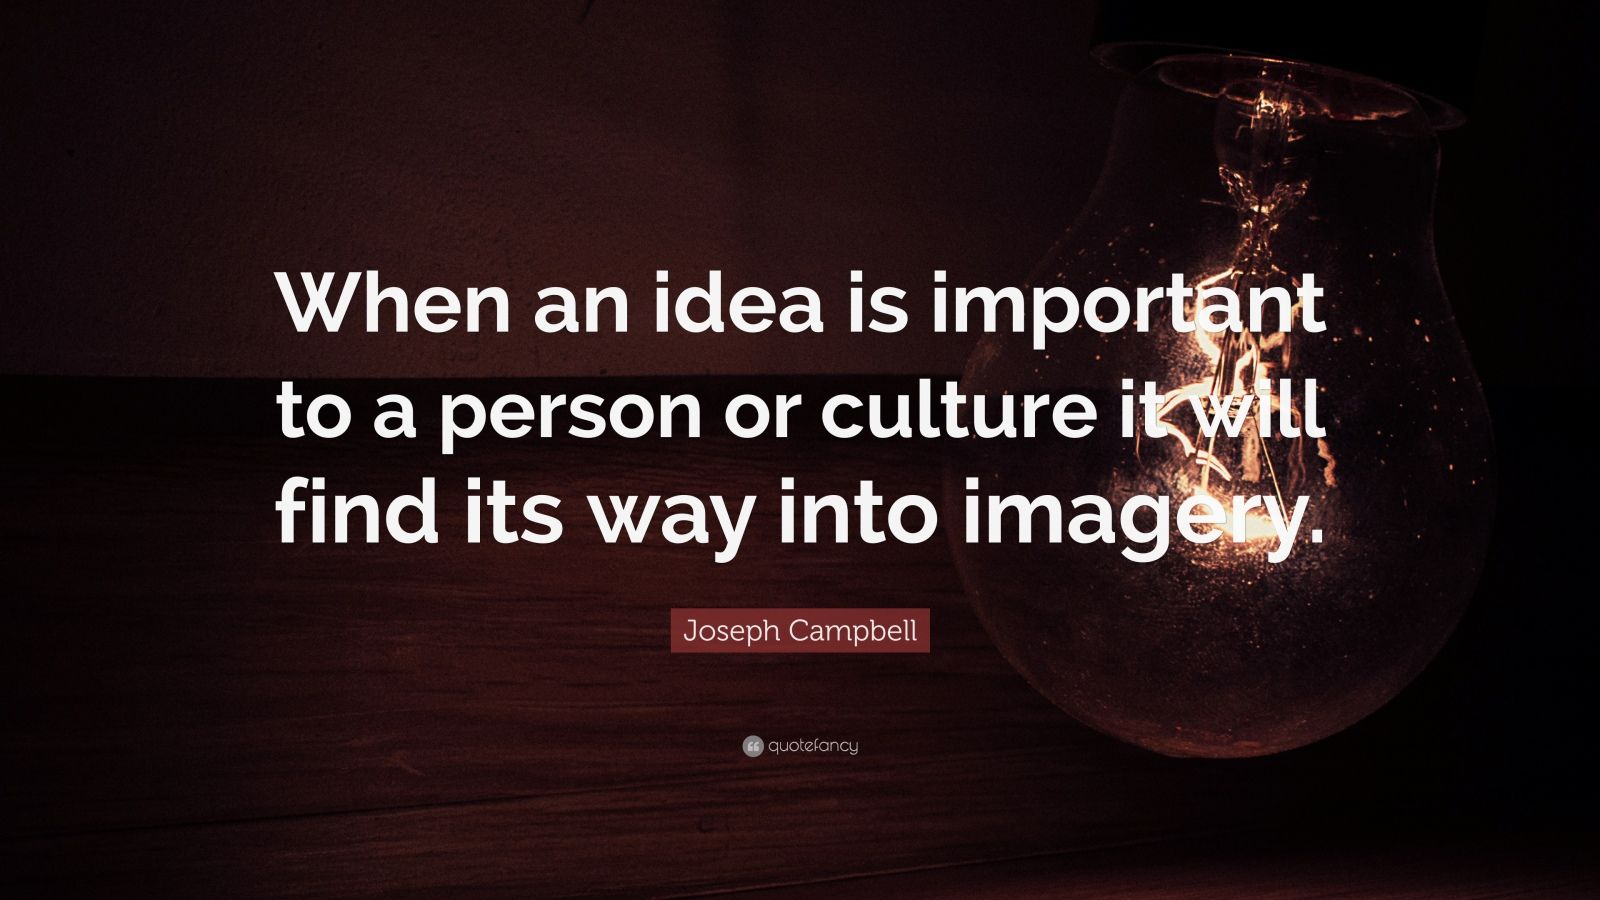 """Joseph Campbell Quote: """"When an idea is important to a person or culture it will find its way into imagery."""""""